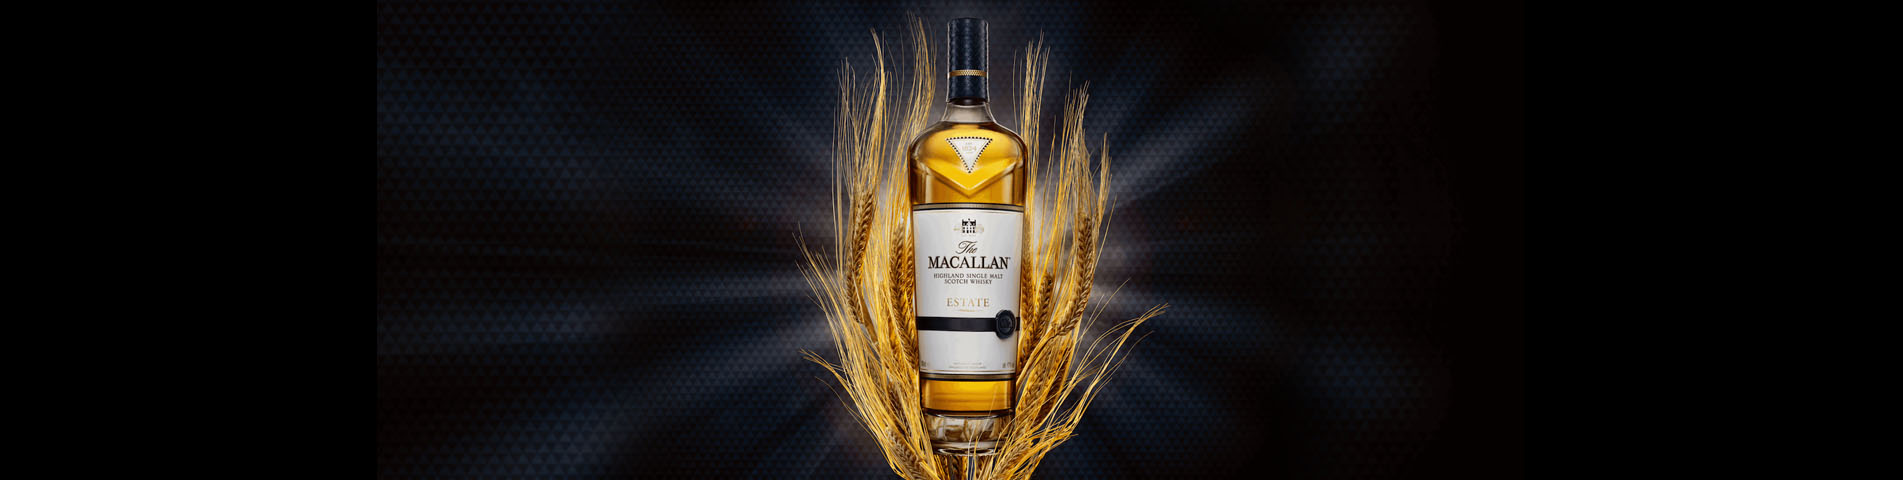 slide_macallan